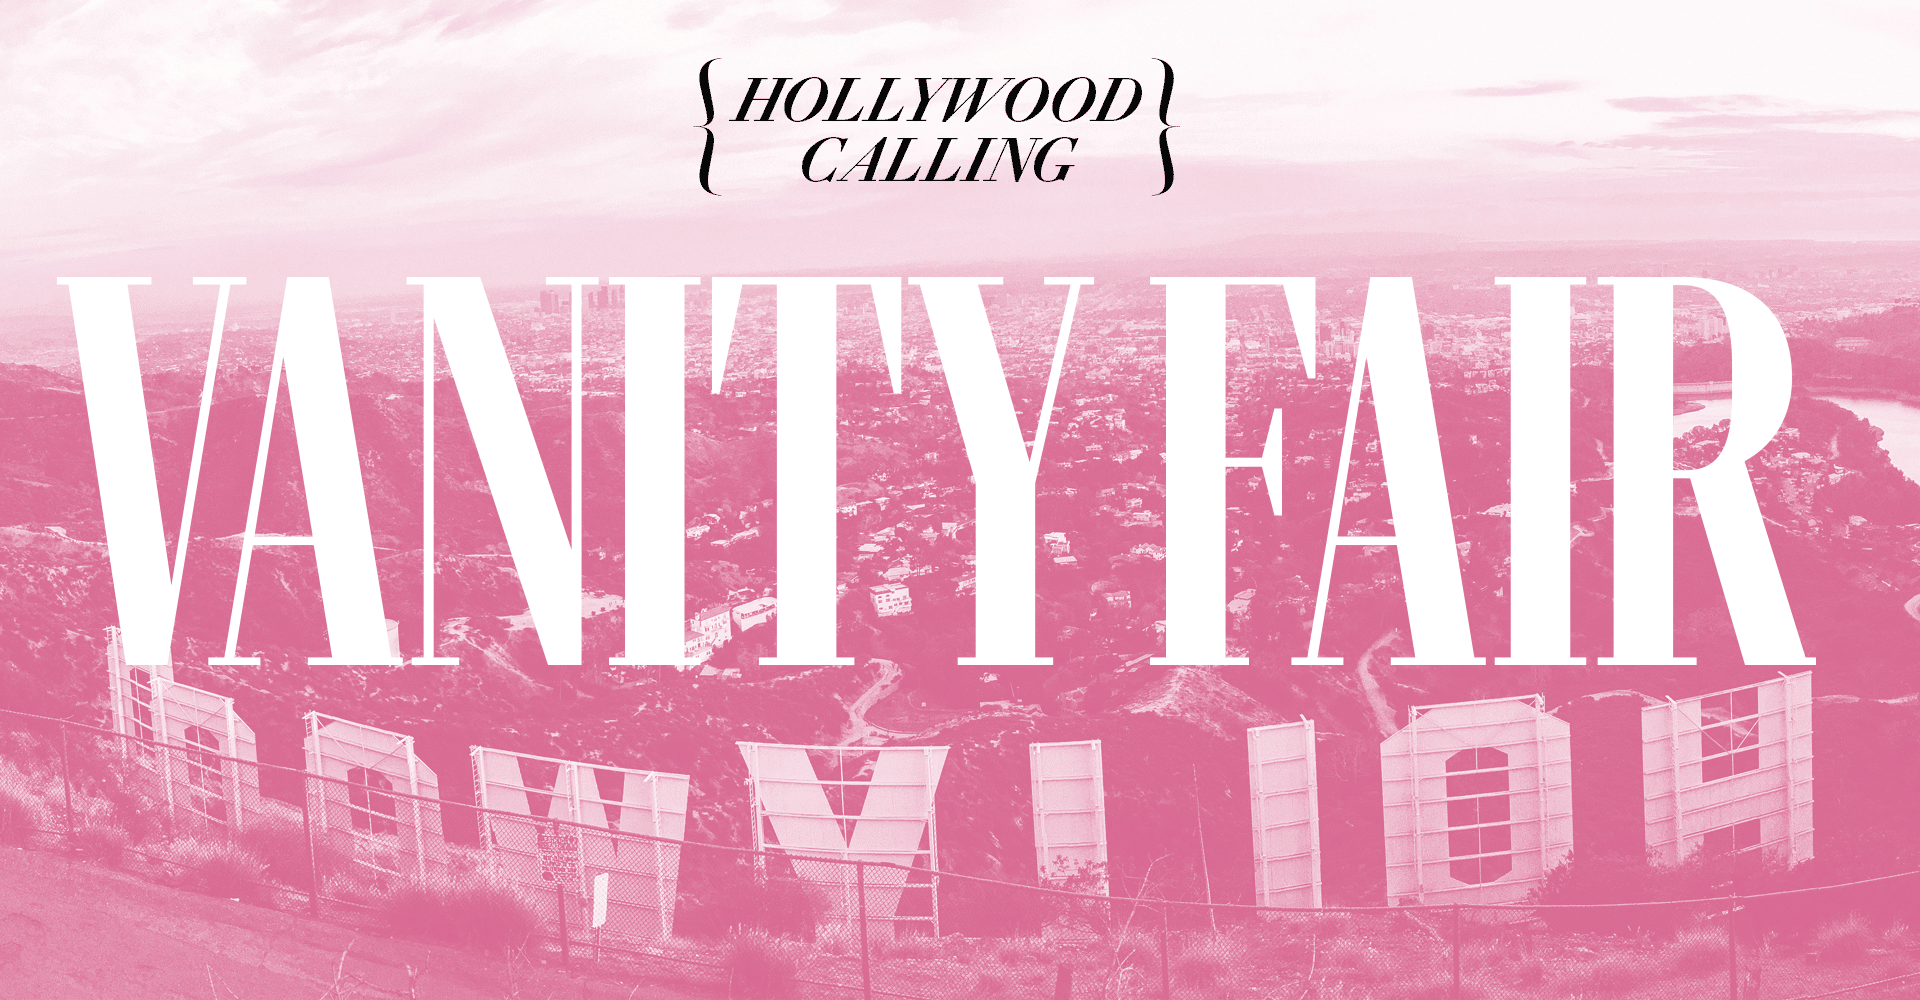 Vanity Fair: Hollywood Calling